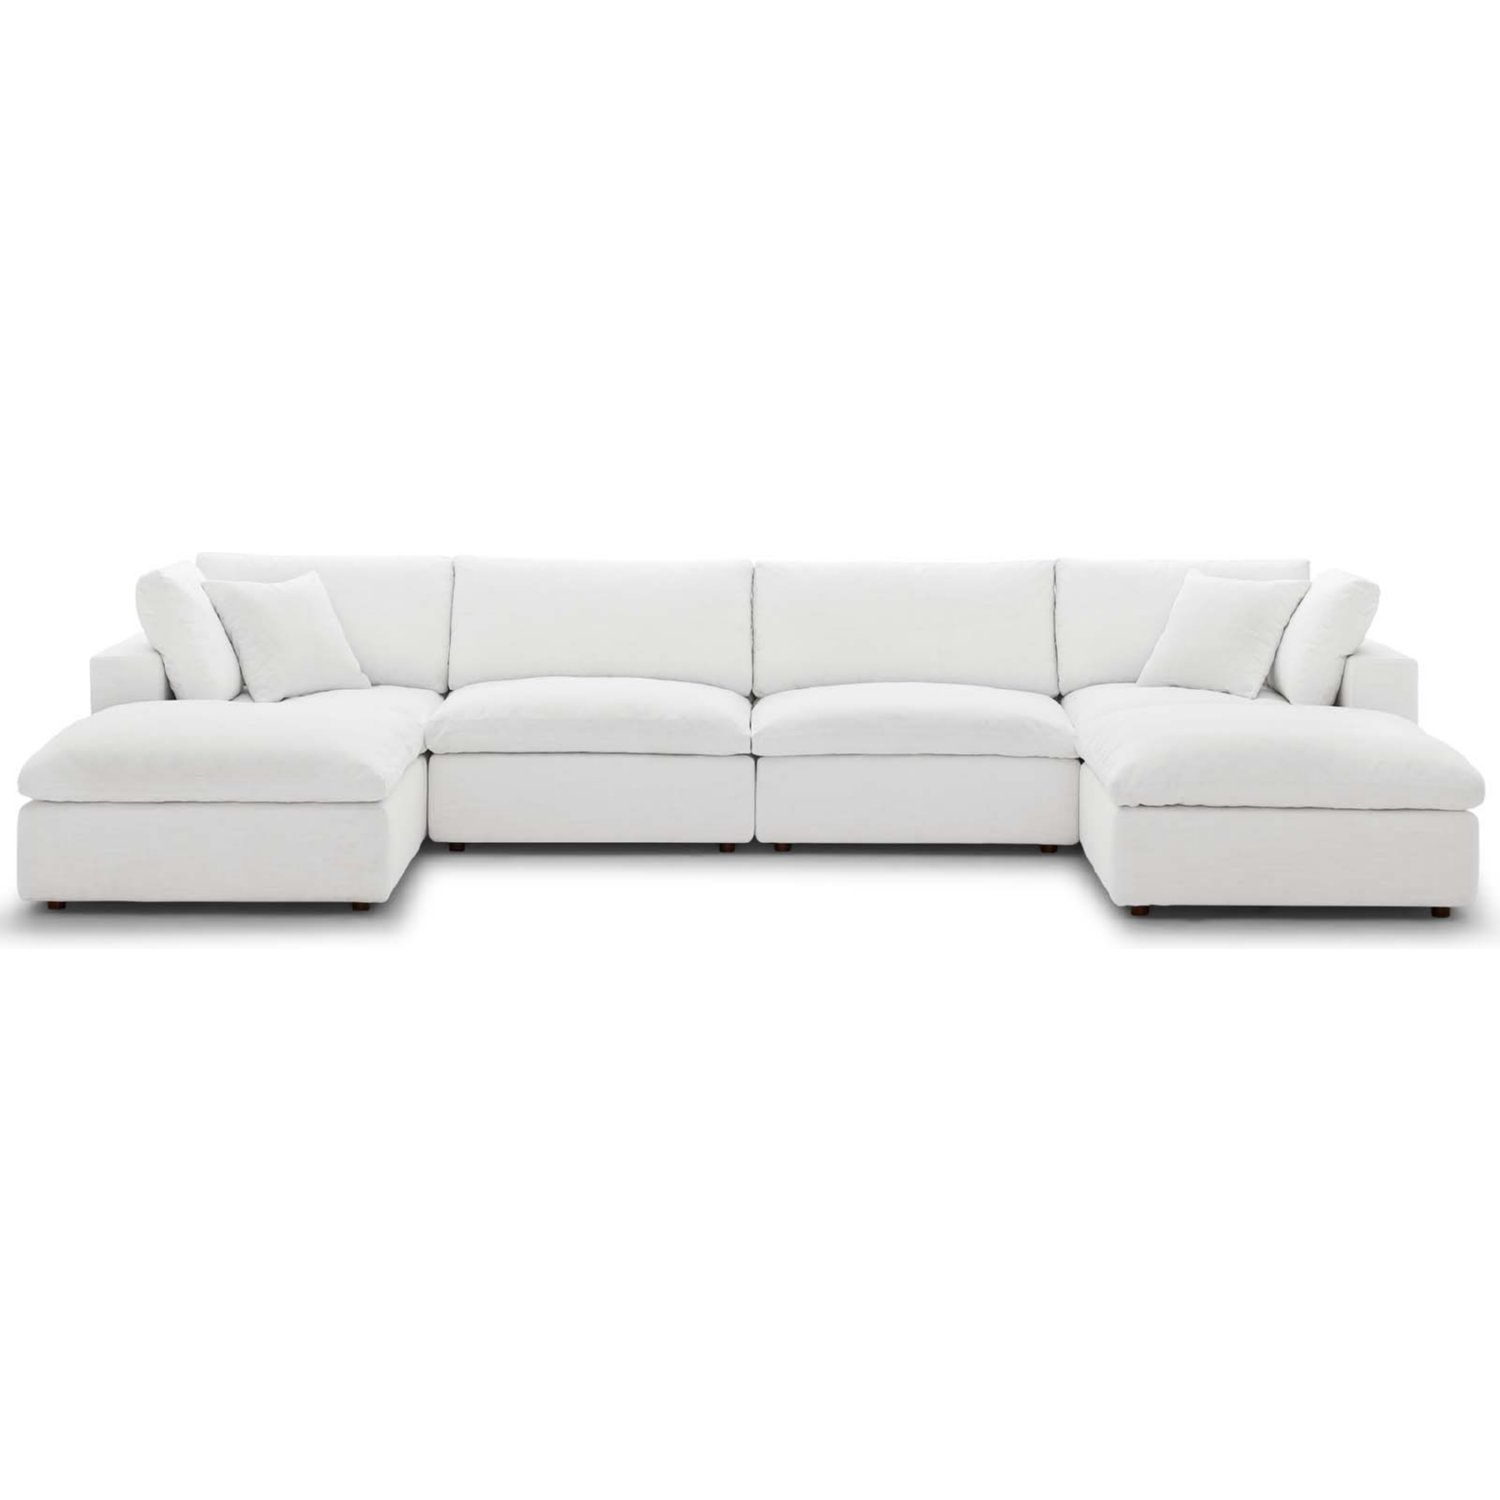 Modway Eei 3362 Whi Commix Down Overstuffed 6 Piece Modular Sectional Sofa White Fabric Modular Sectional Sofa Sectional Sofa Modular Sofa